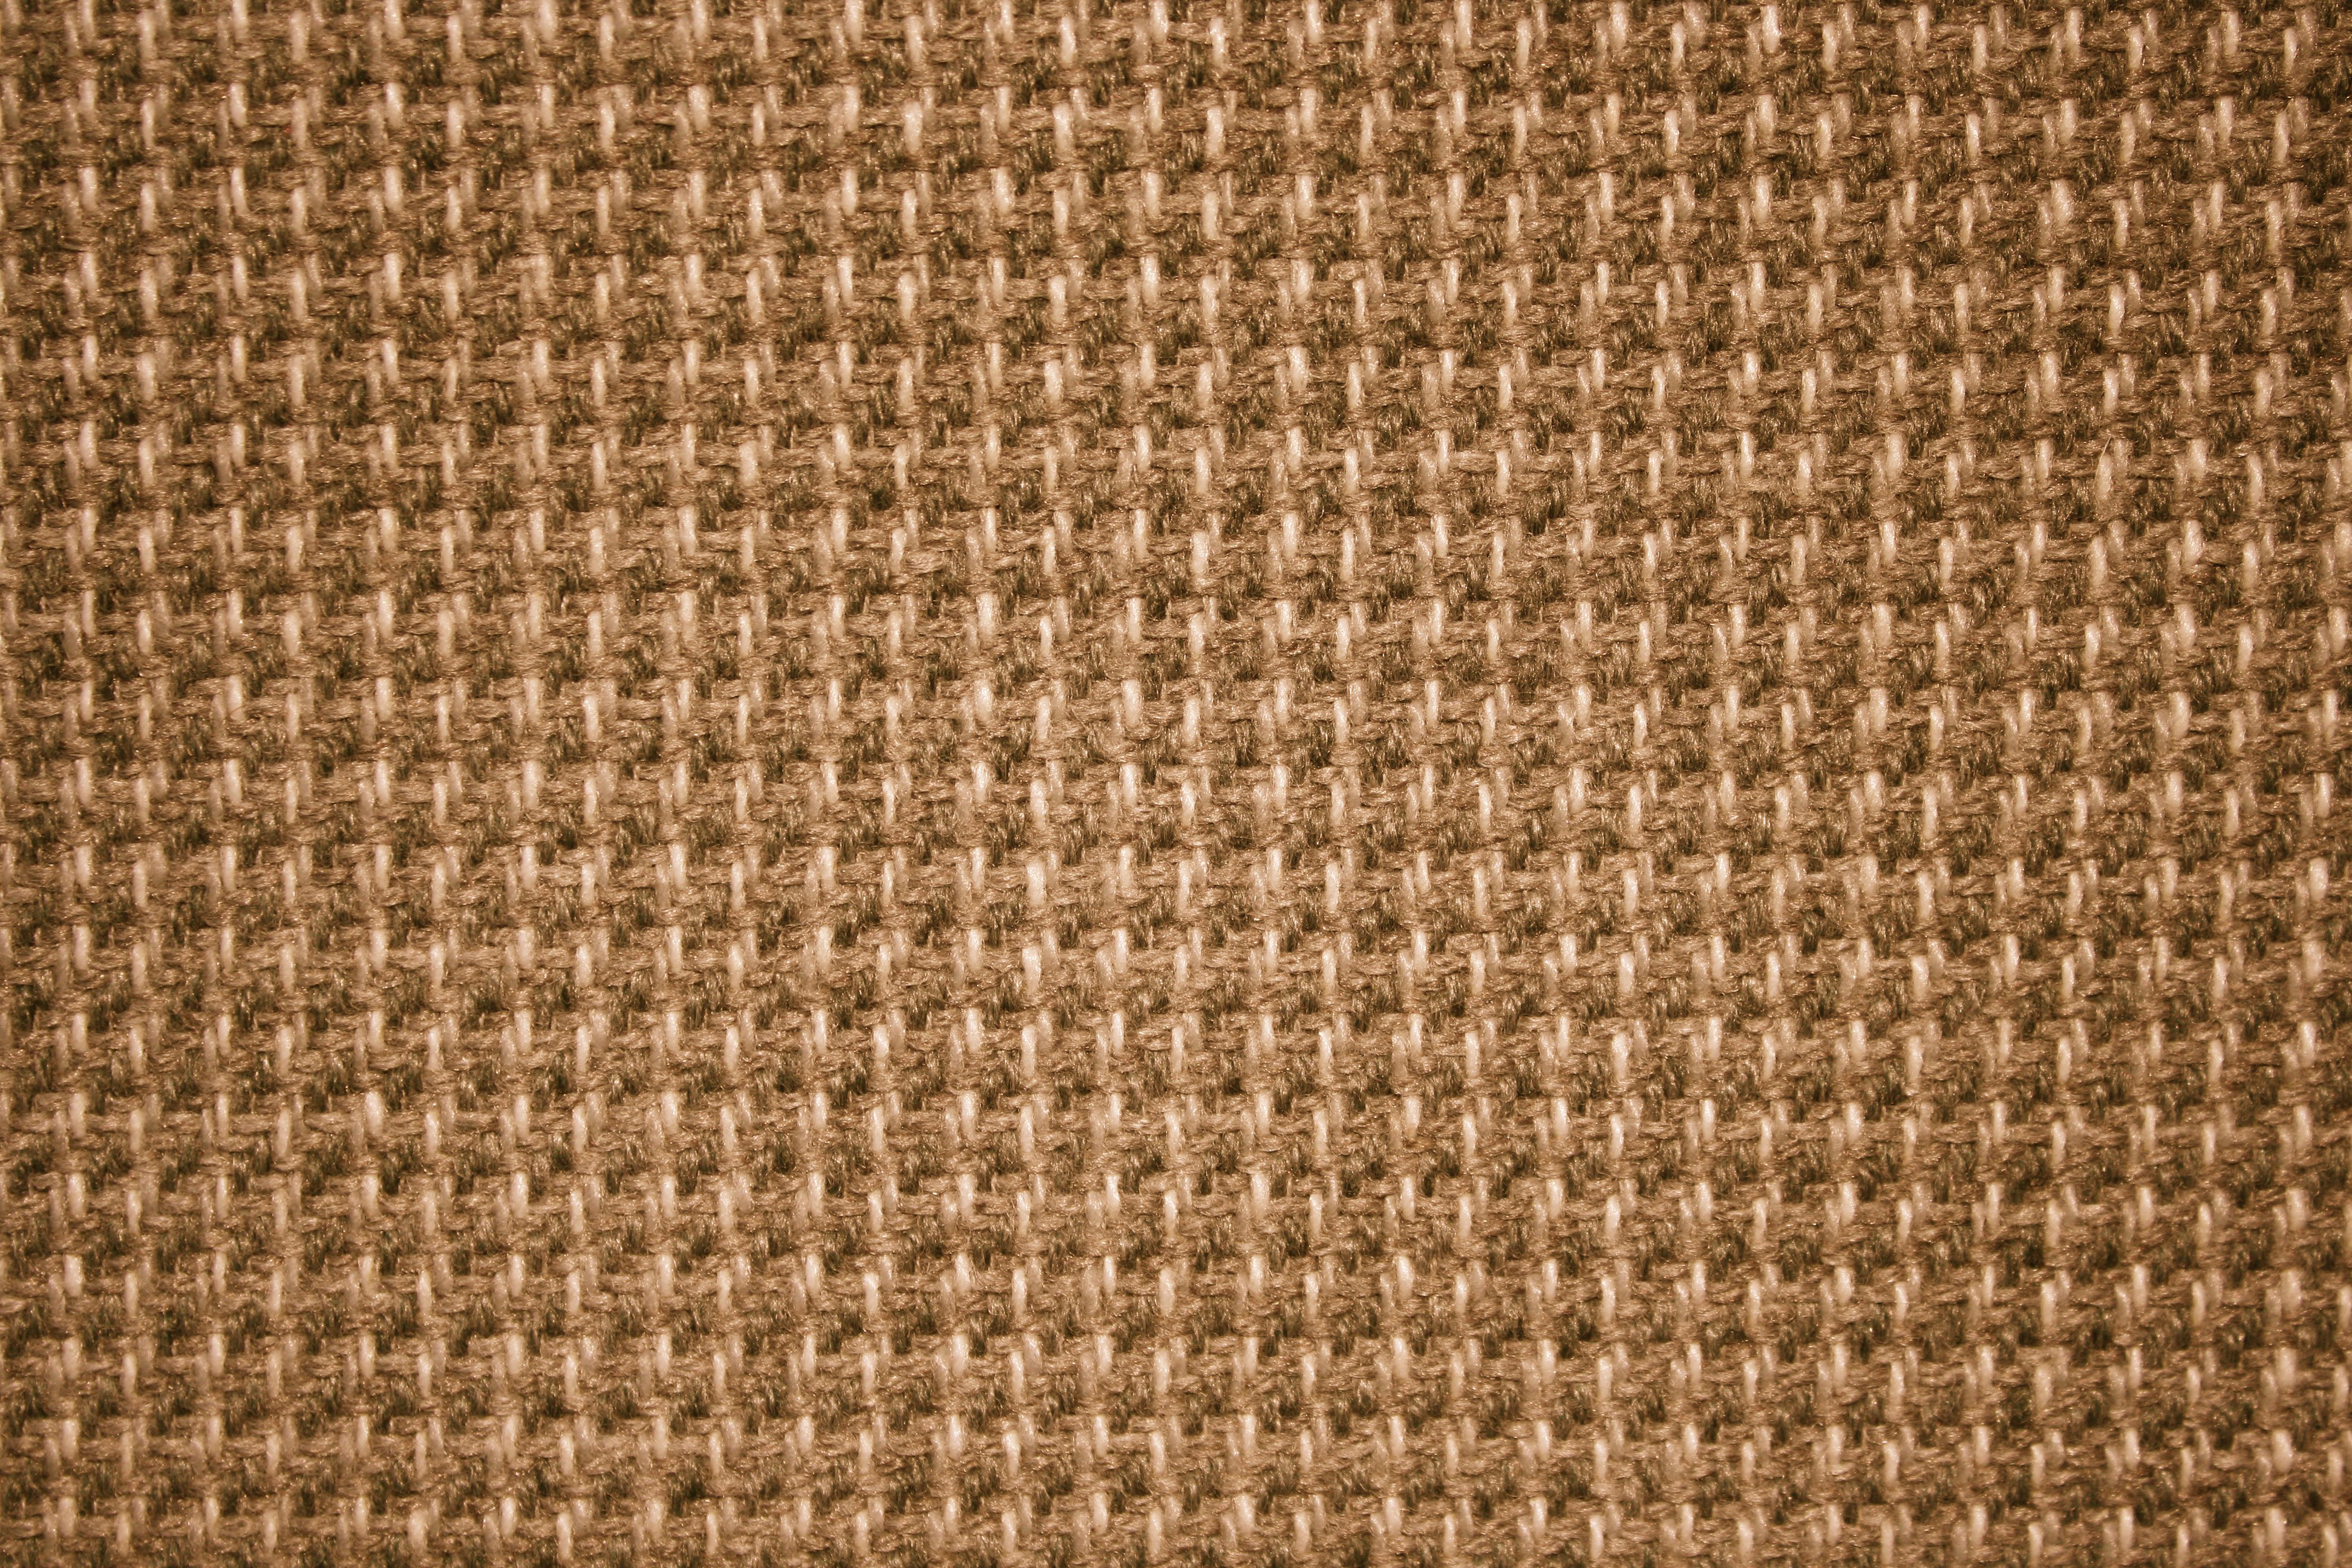 Brown Upholstery Fabric Texture Picture Free Photograph